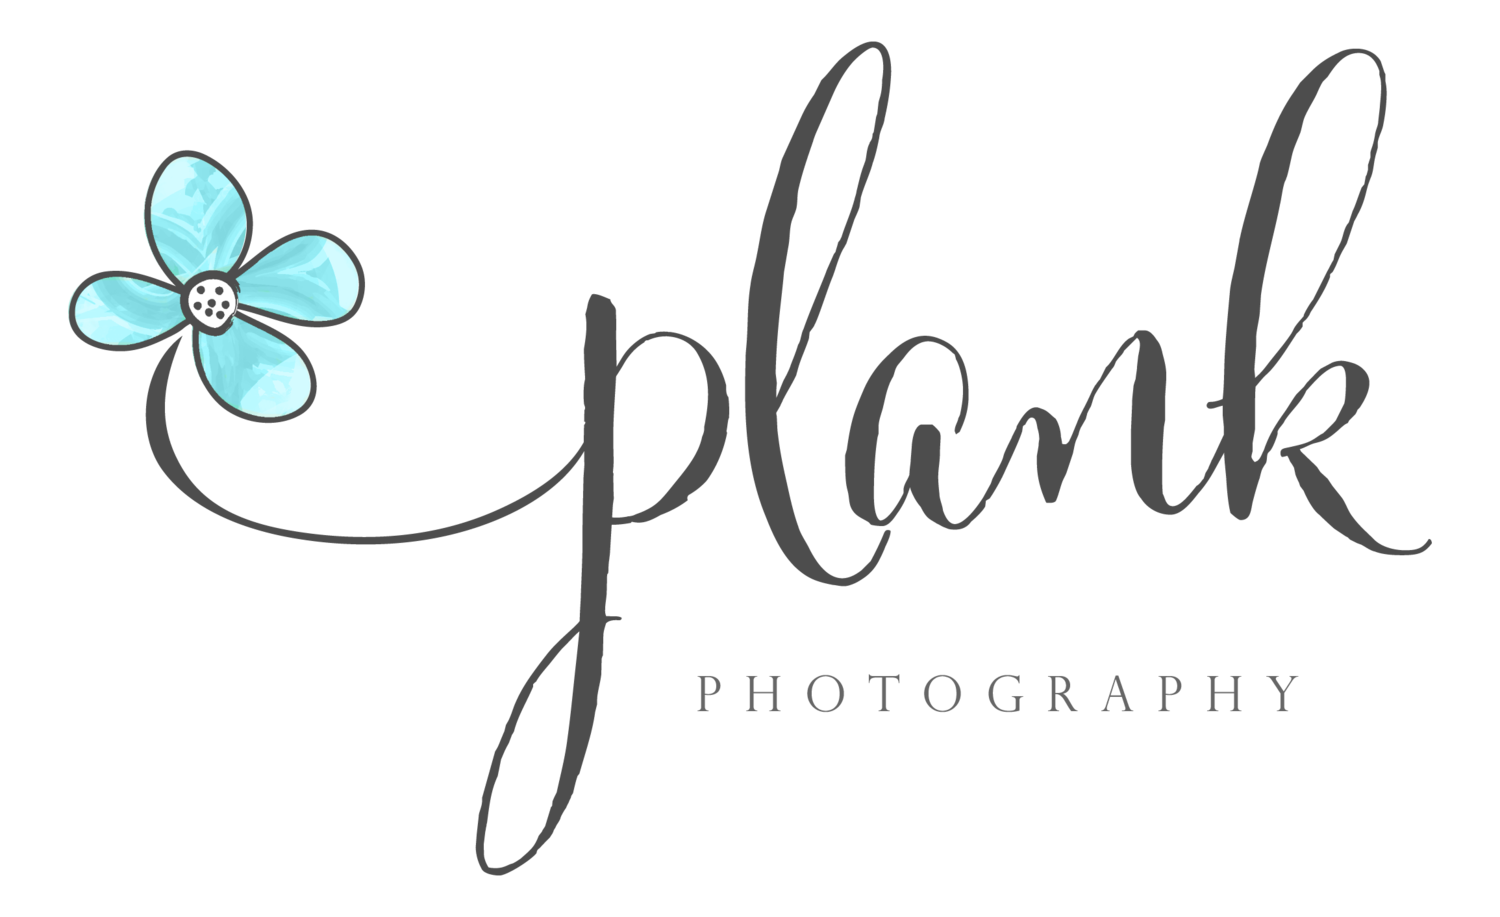 Plank Photography